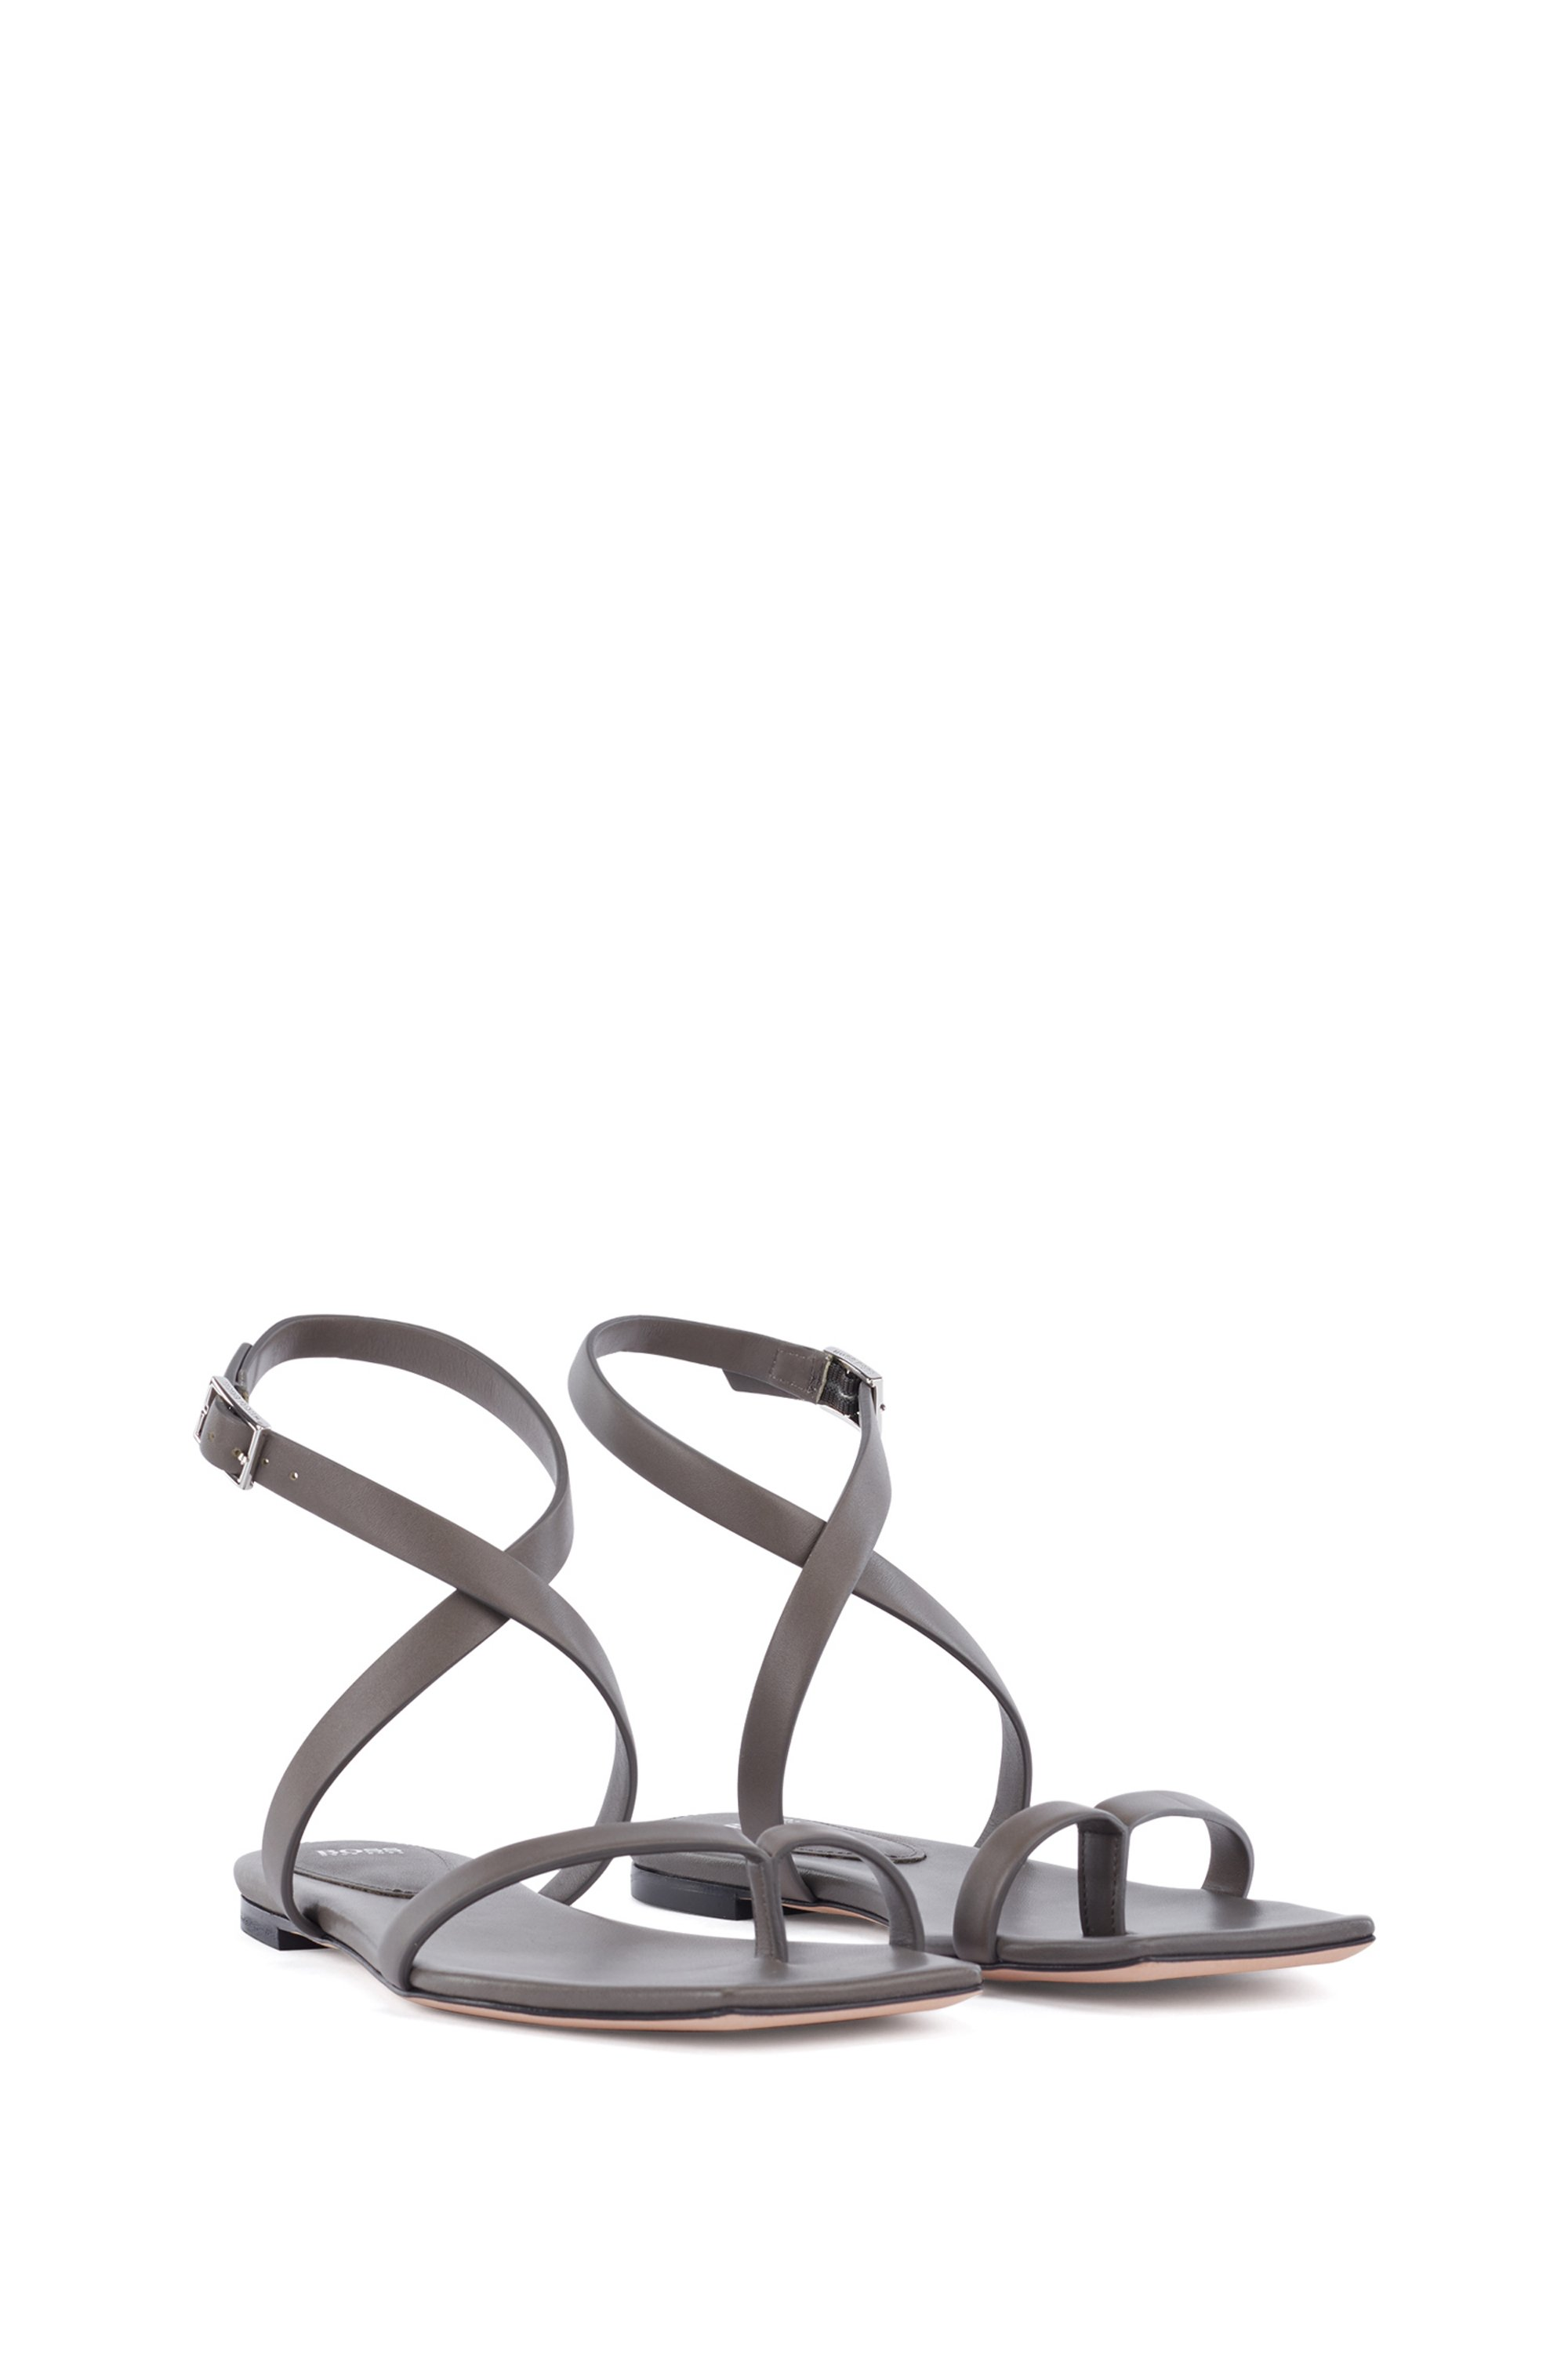 Flat strappy sandals in Italian leather with squared toe